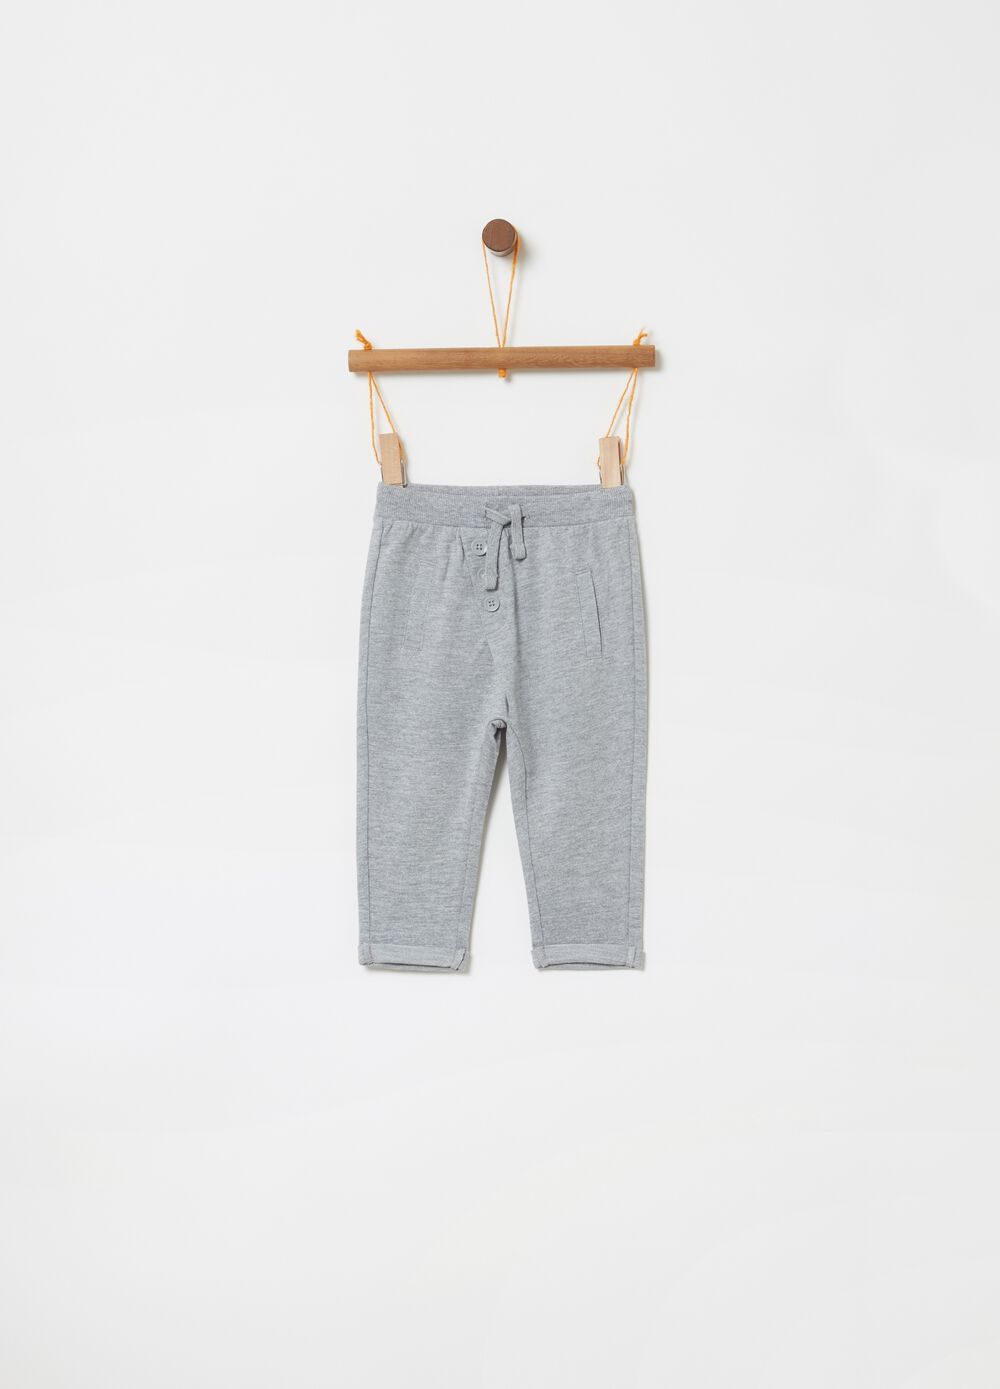 French terry mélange trousers